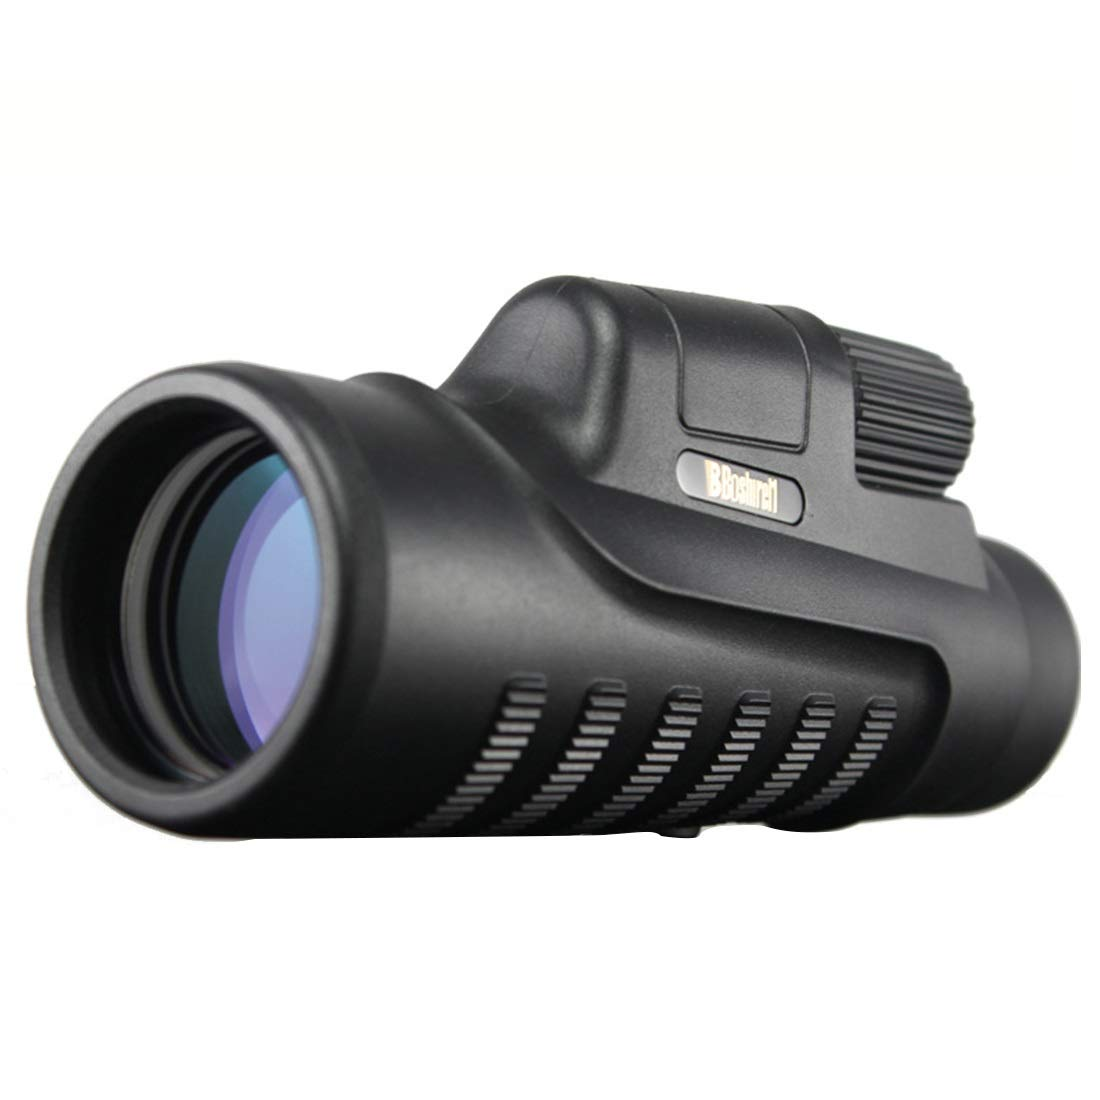 ZGQA-GQA 10x42 High Powered Zoom Monocular - Waterproof and Fog-Proof Telescope FMC BAK4 Prism for Concerts Traveling, Wildlife Scenery for Adult (Color : Black) by ZGQA-GQA